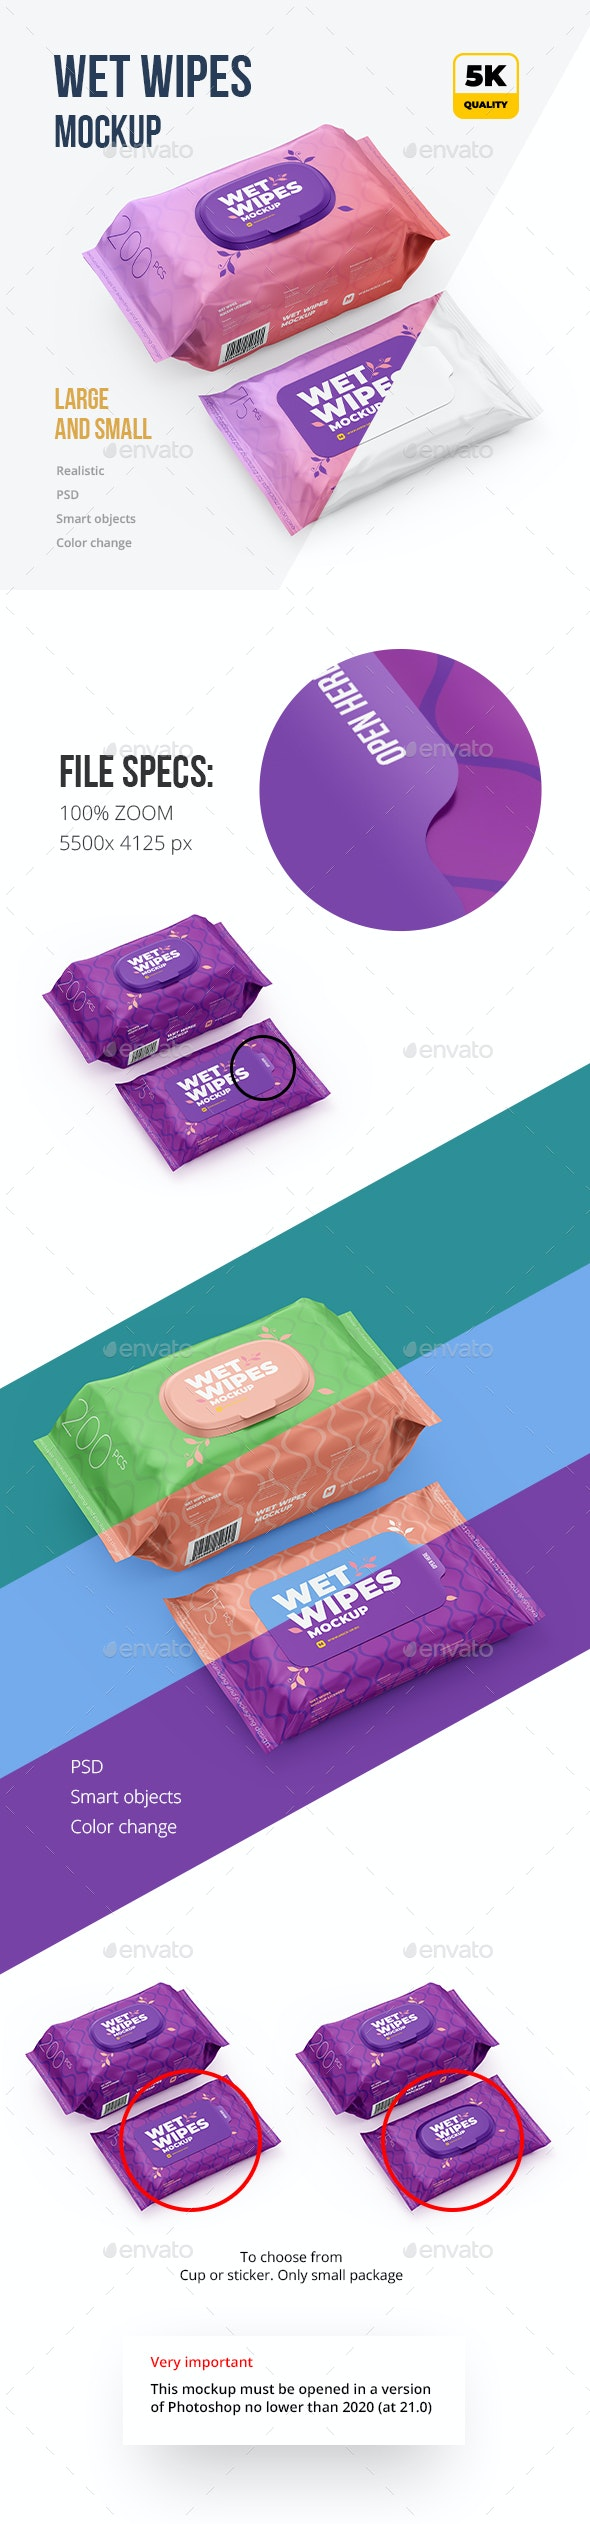 Wet Wipes Mockup, large and small - Beauty Packaging